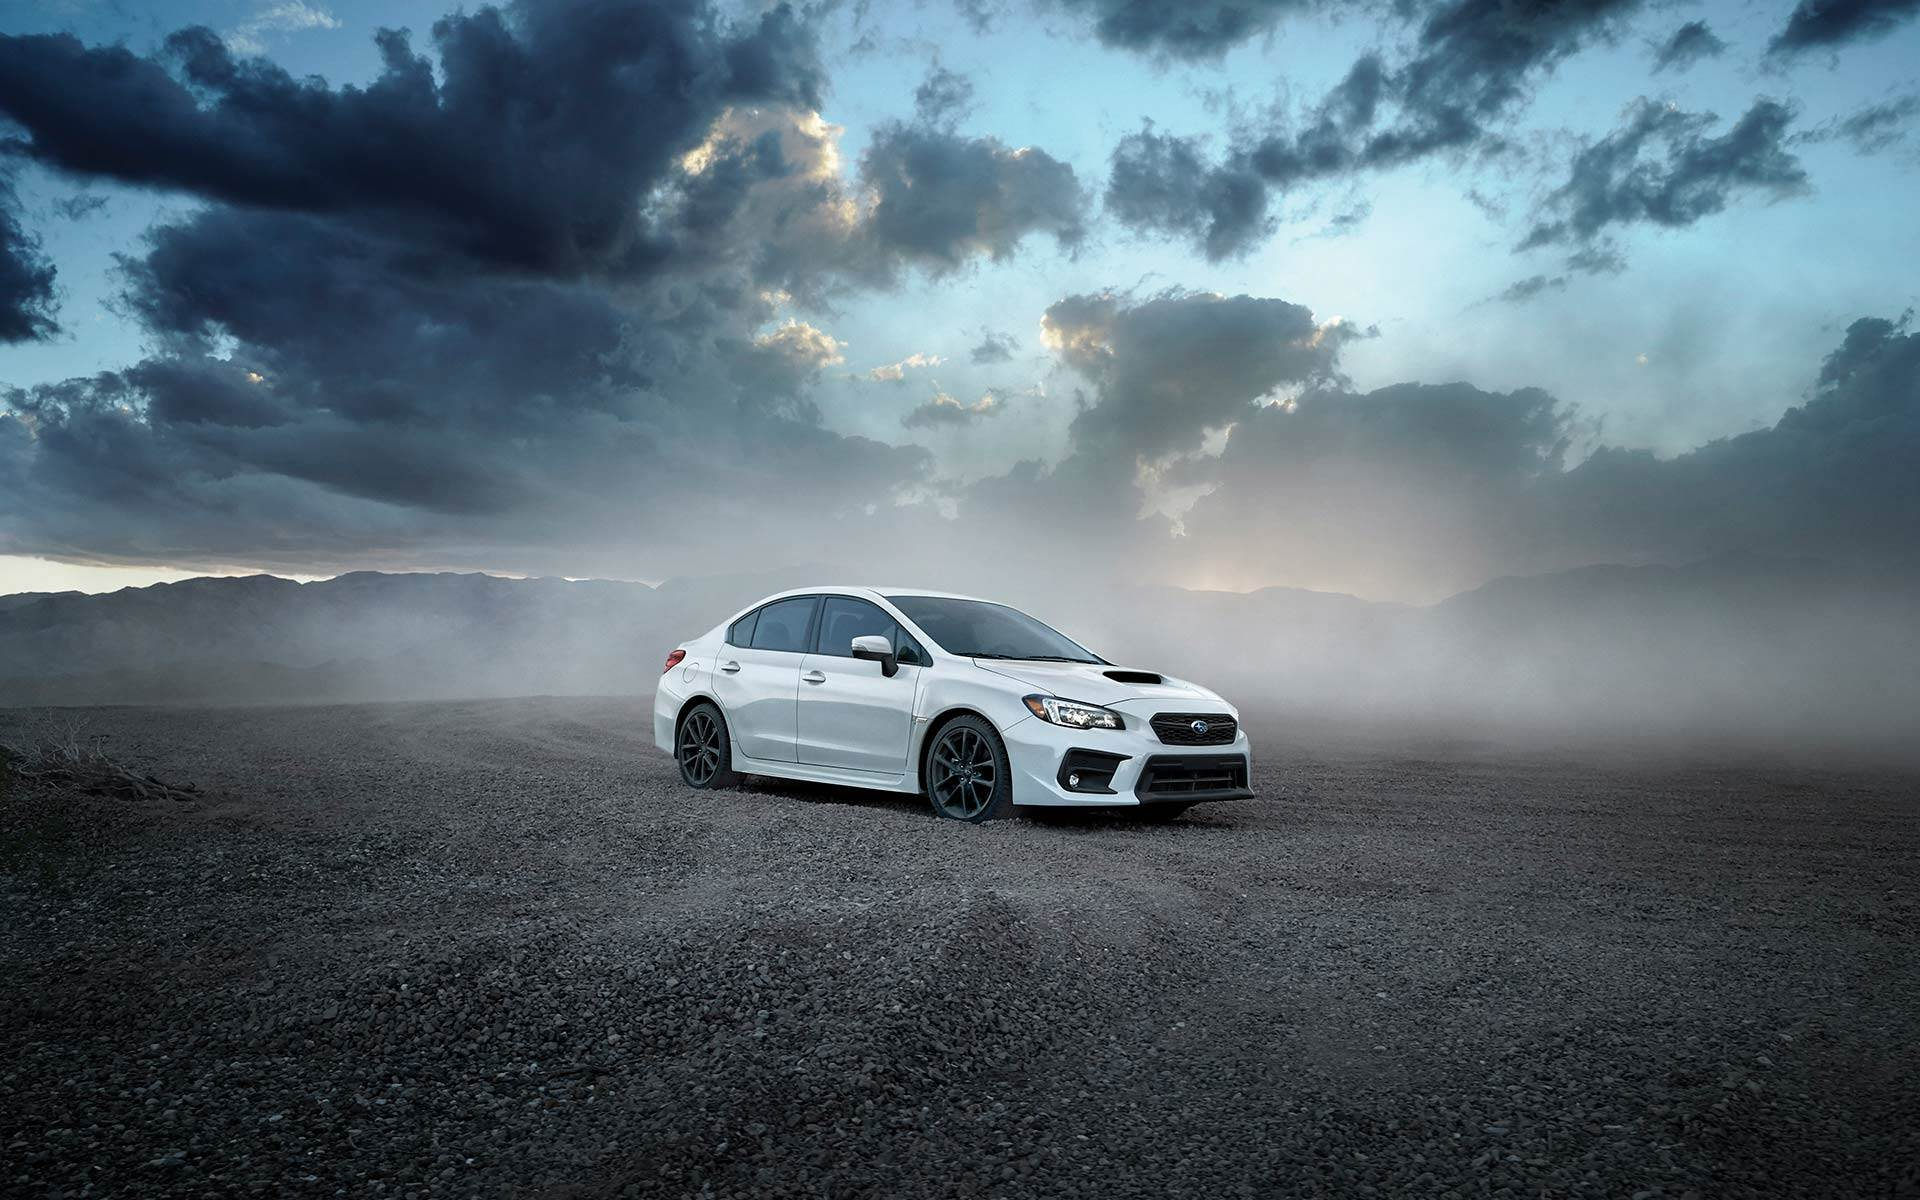 2019 Subaru WRX STI White Color 4k hd wallpaper - Latest Cars 2018-2019